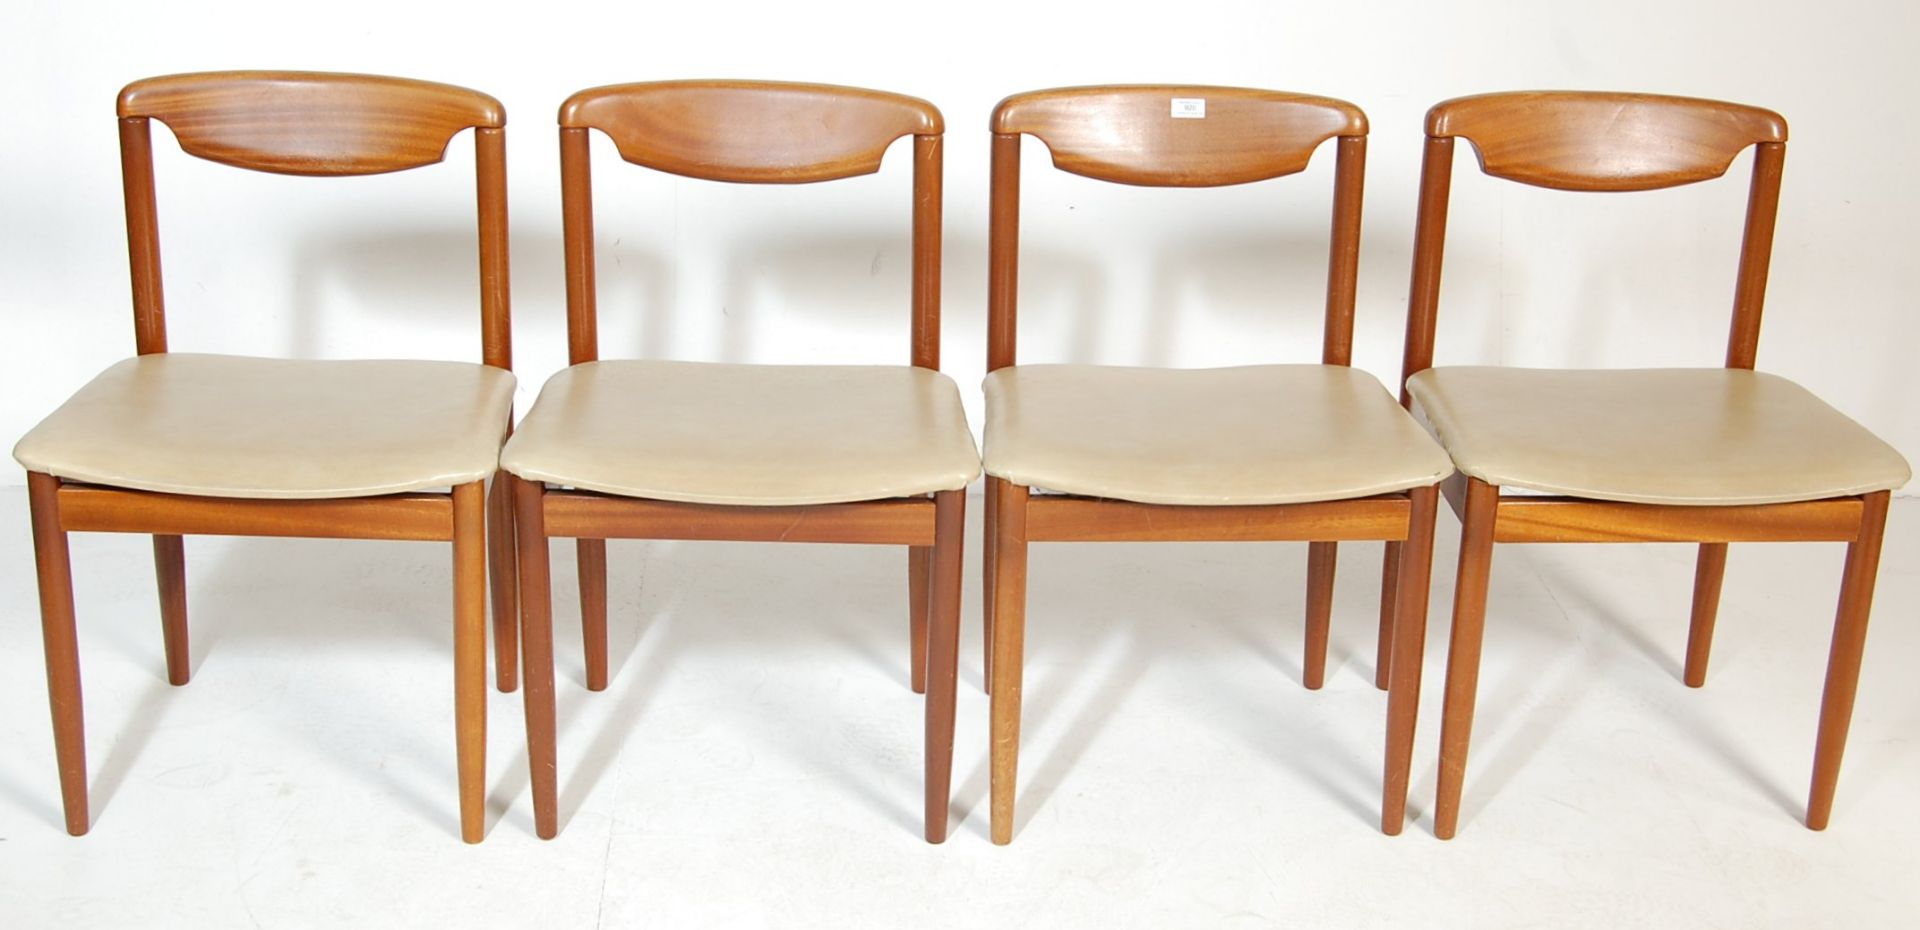 FOUR RETRO TEAK WOOD DINING CHAIRS WITH LEATHER SEATS - Image 2 of 5